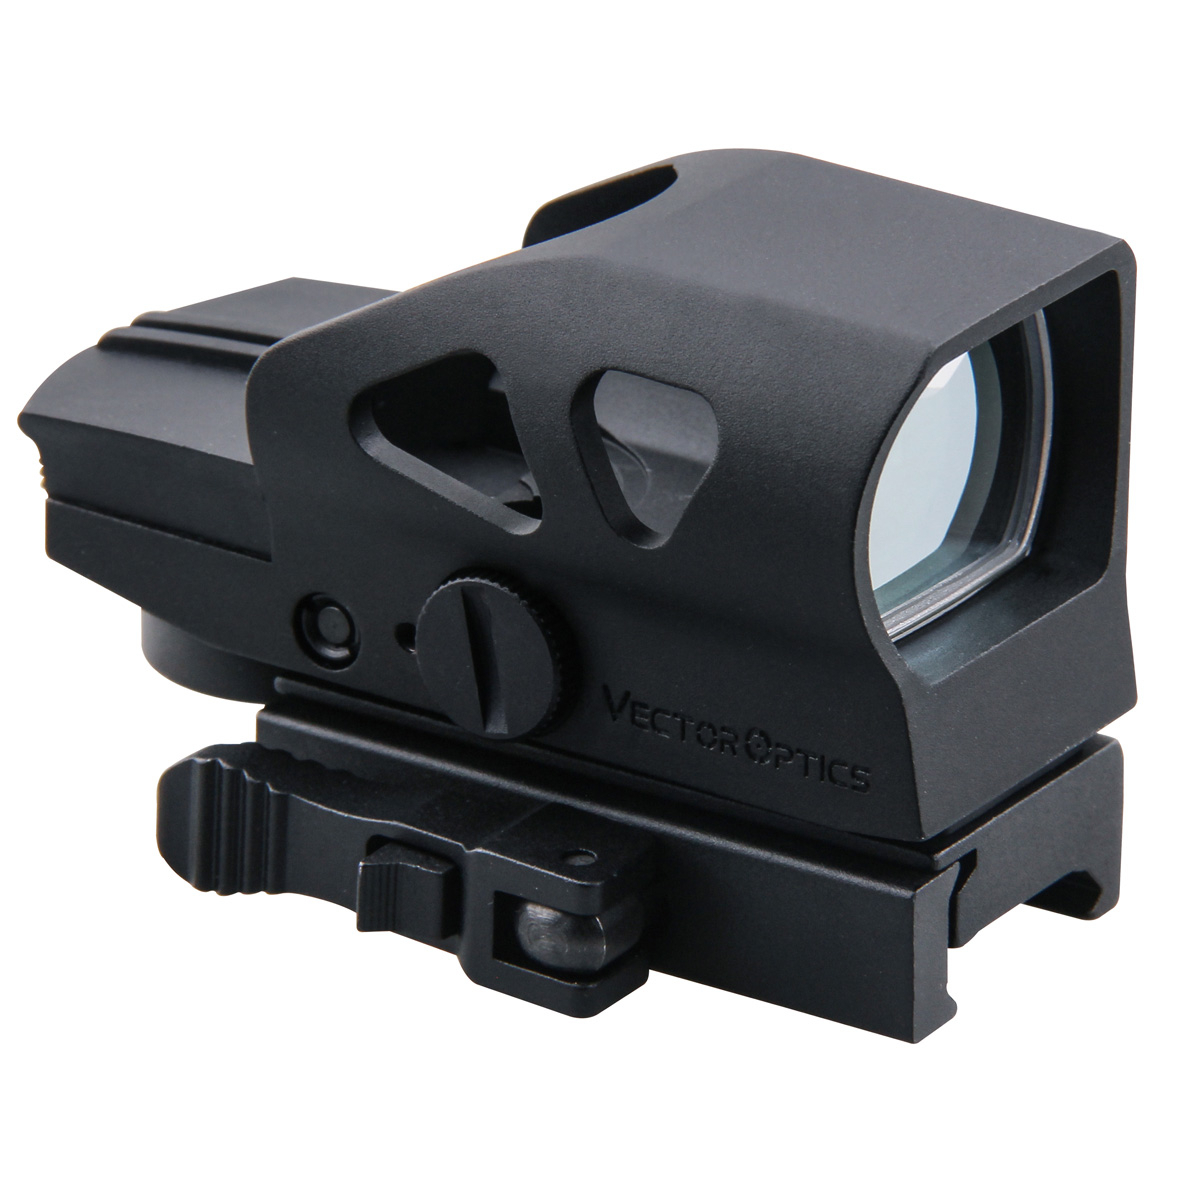 Image 4 - Vector Optics Ratchet 1x23x34 Multi 4 Reticle Red Dot Scope 